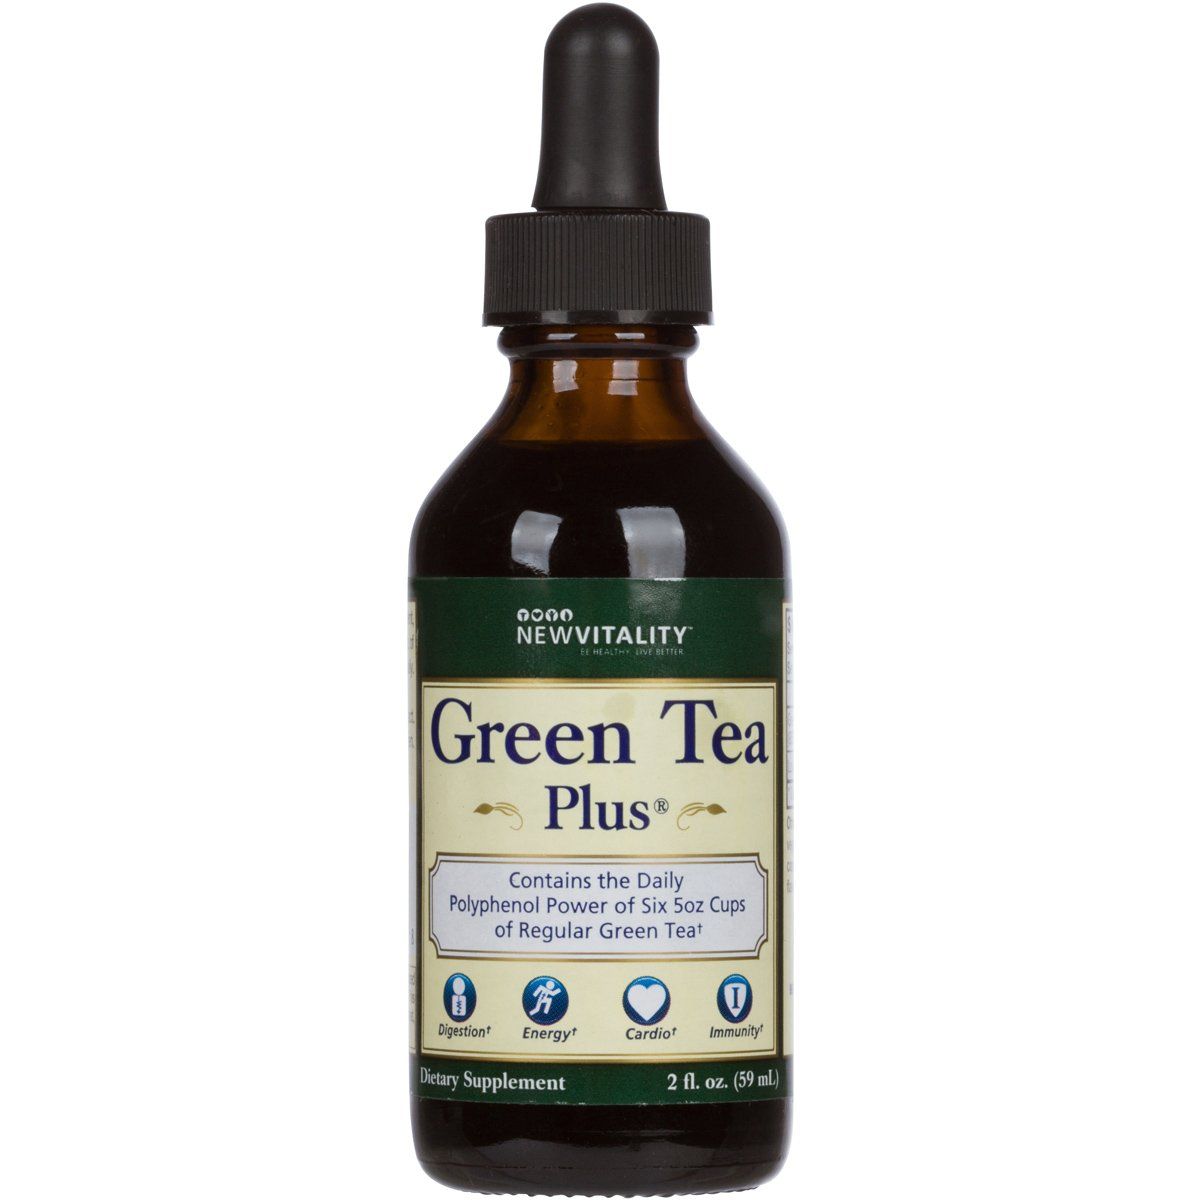 Green Tea Plus | Convenient & On the Go Concentrated High Antioxidant Extract to Support Healthy Metabolism (30 Day Supply) by New Vitality (Image #1)